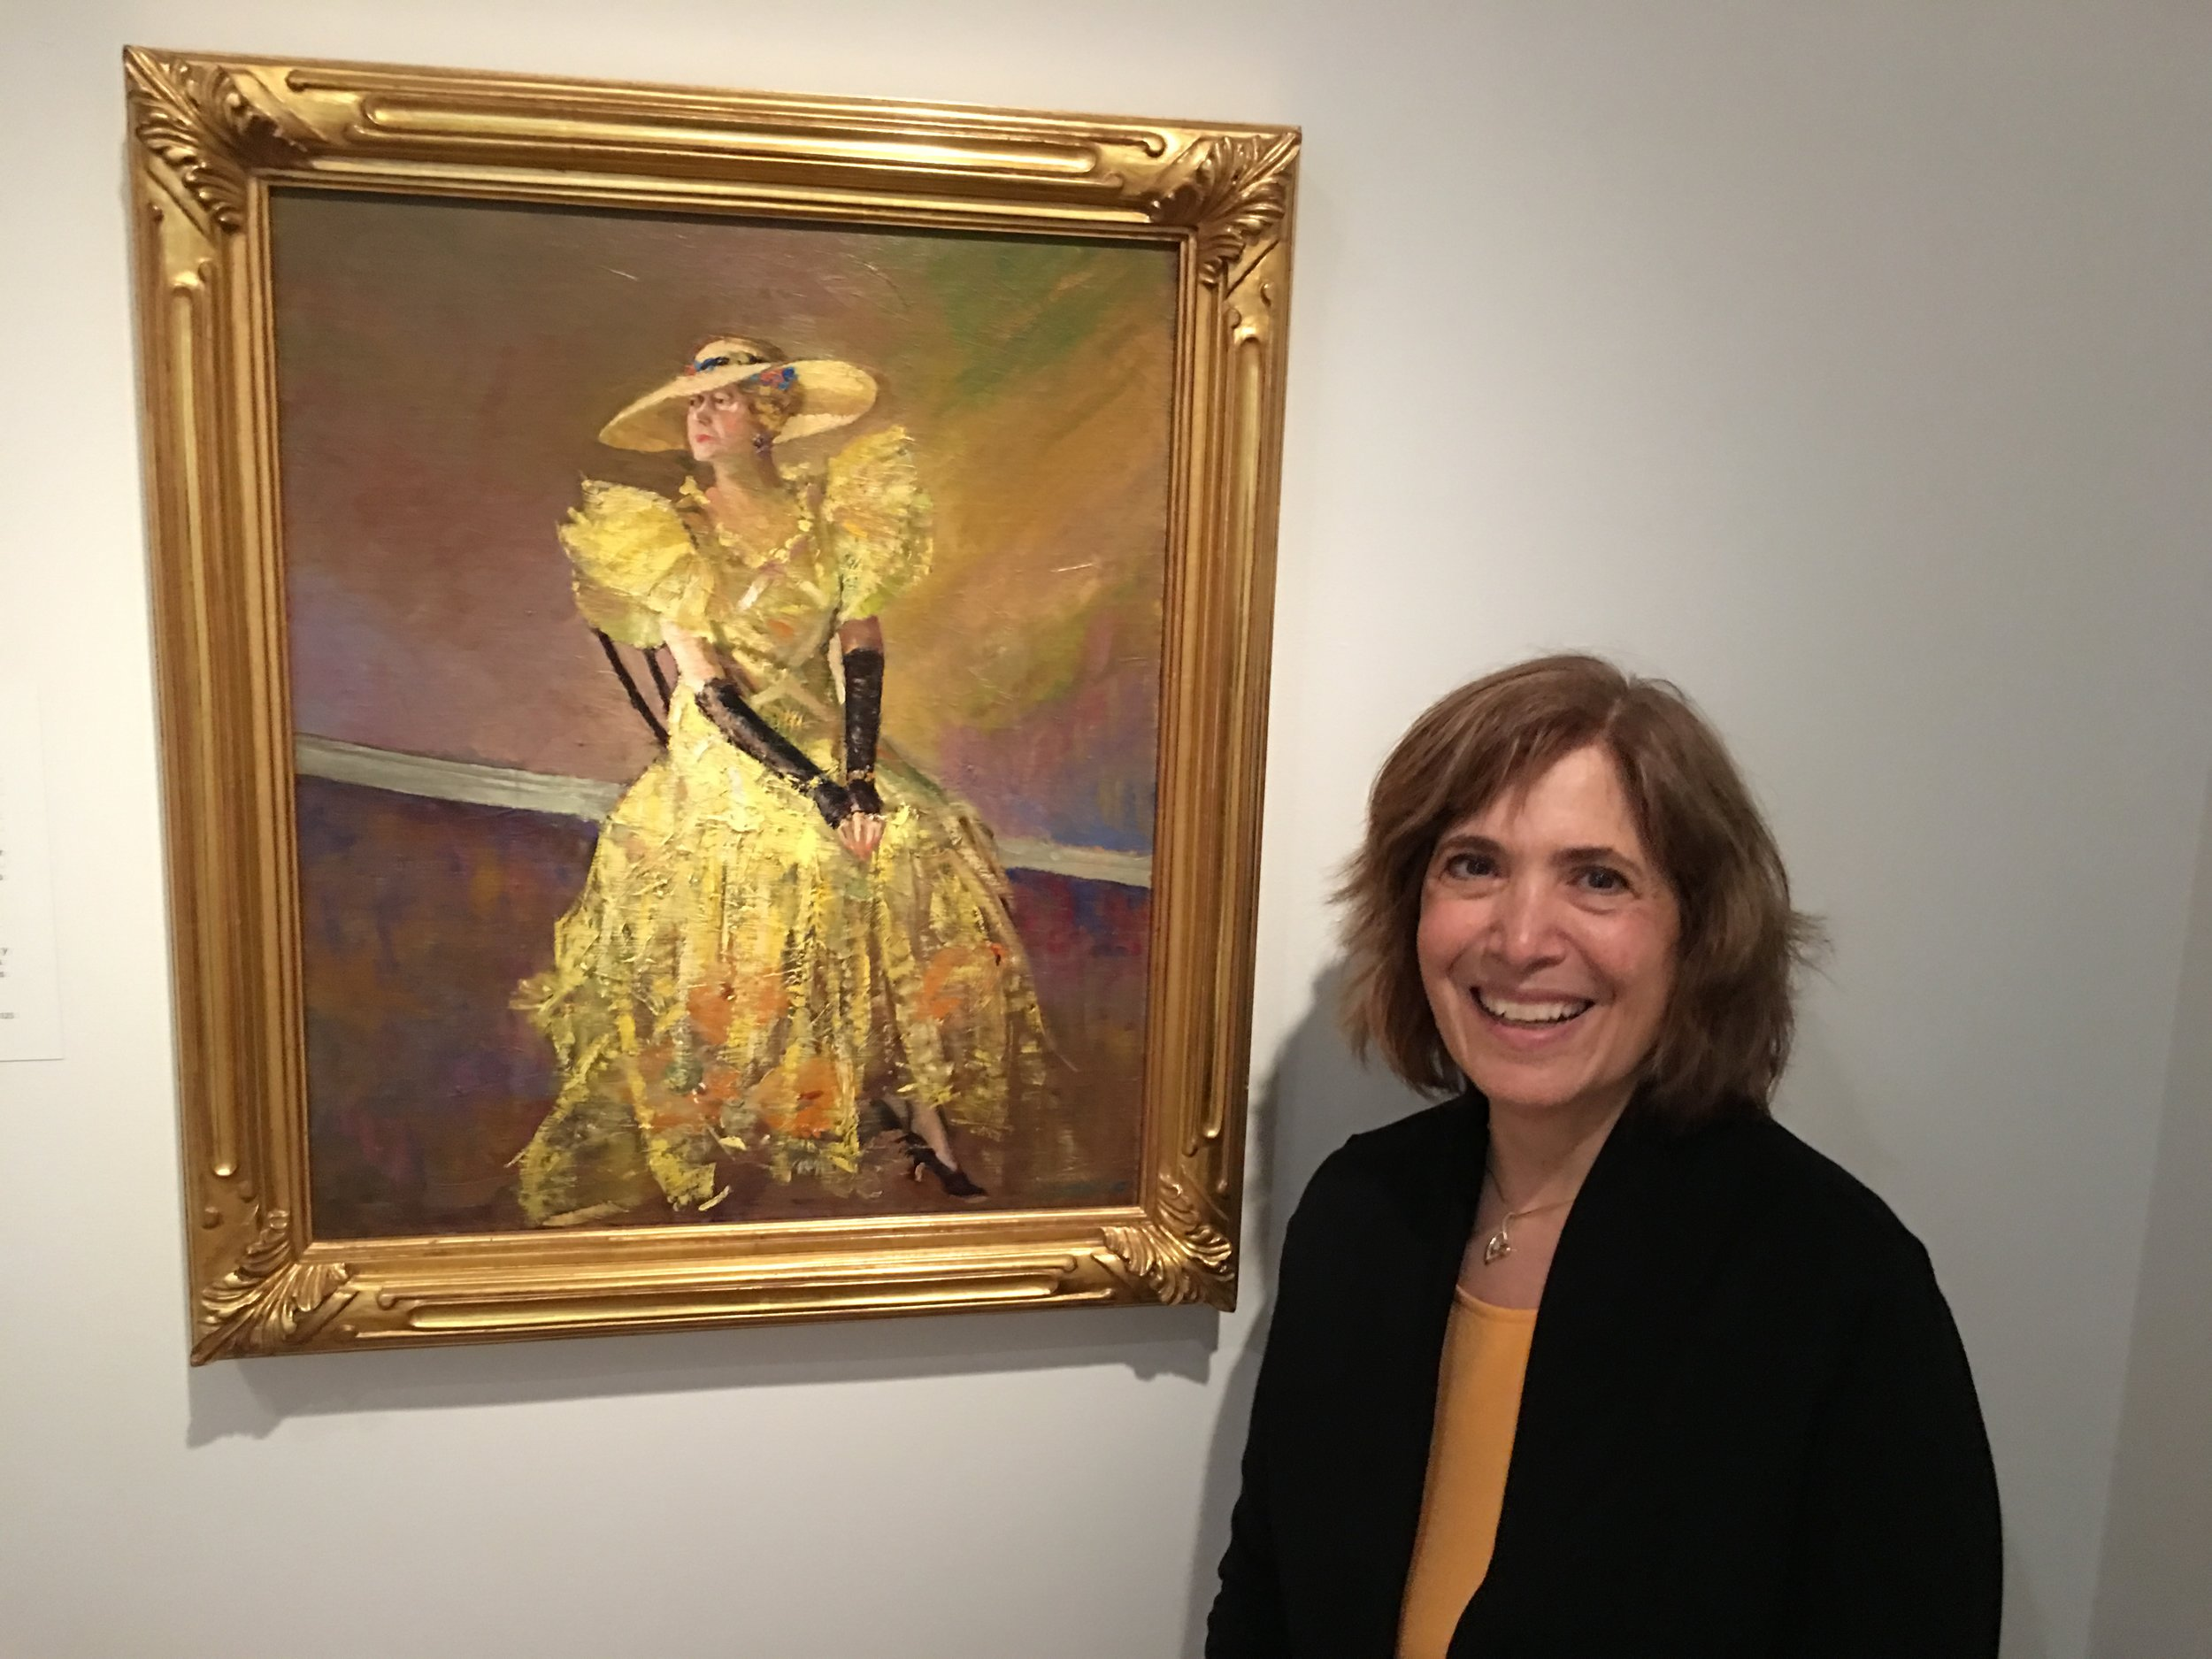 Nancy with a Laura Wheeler Waring painting of Alice Dunbar Nelson at the Smithsonian Institution's National Portrait Gallery in Washington D.C. The painting is reproduced in the book, 'Beautiful Shades of Brown,' illustrated by Felicia Marshall